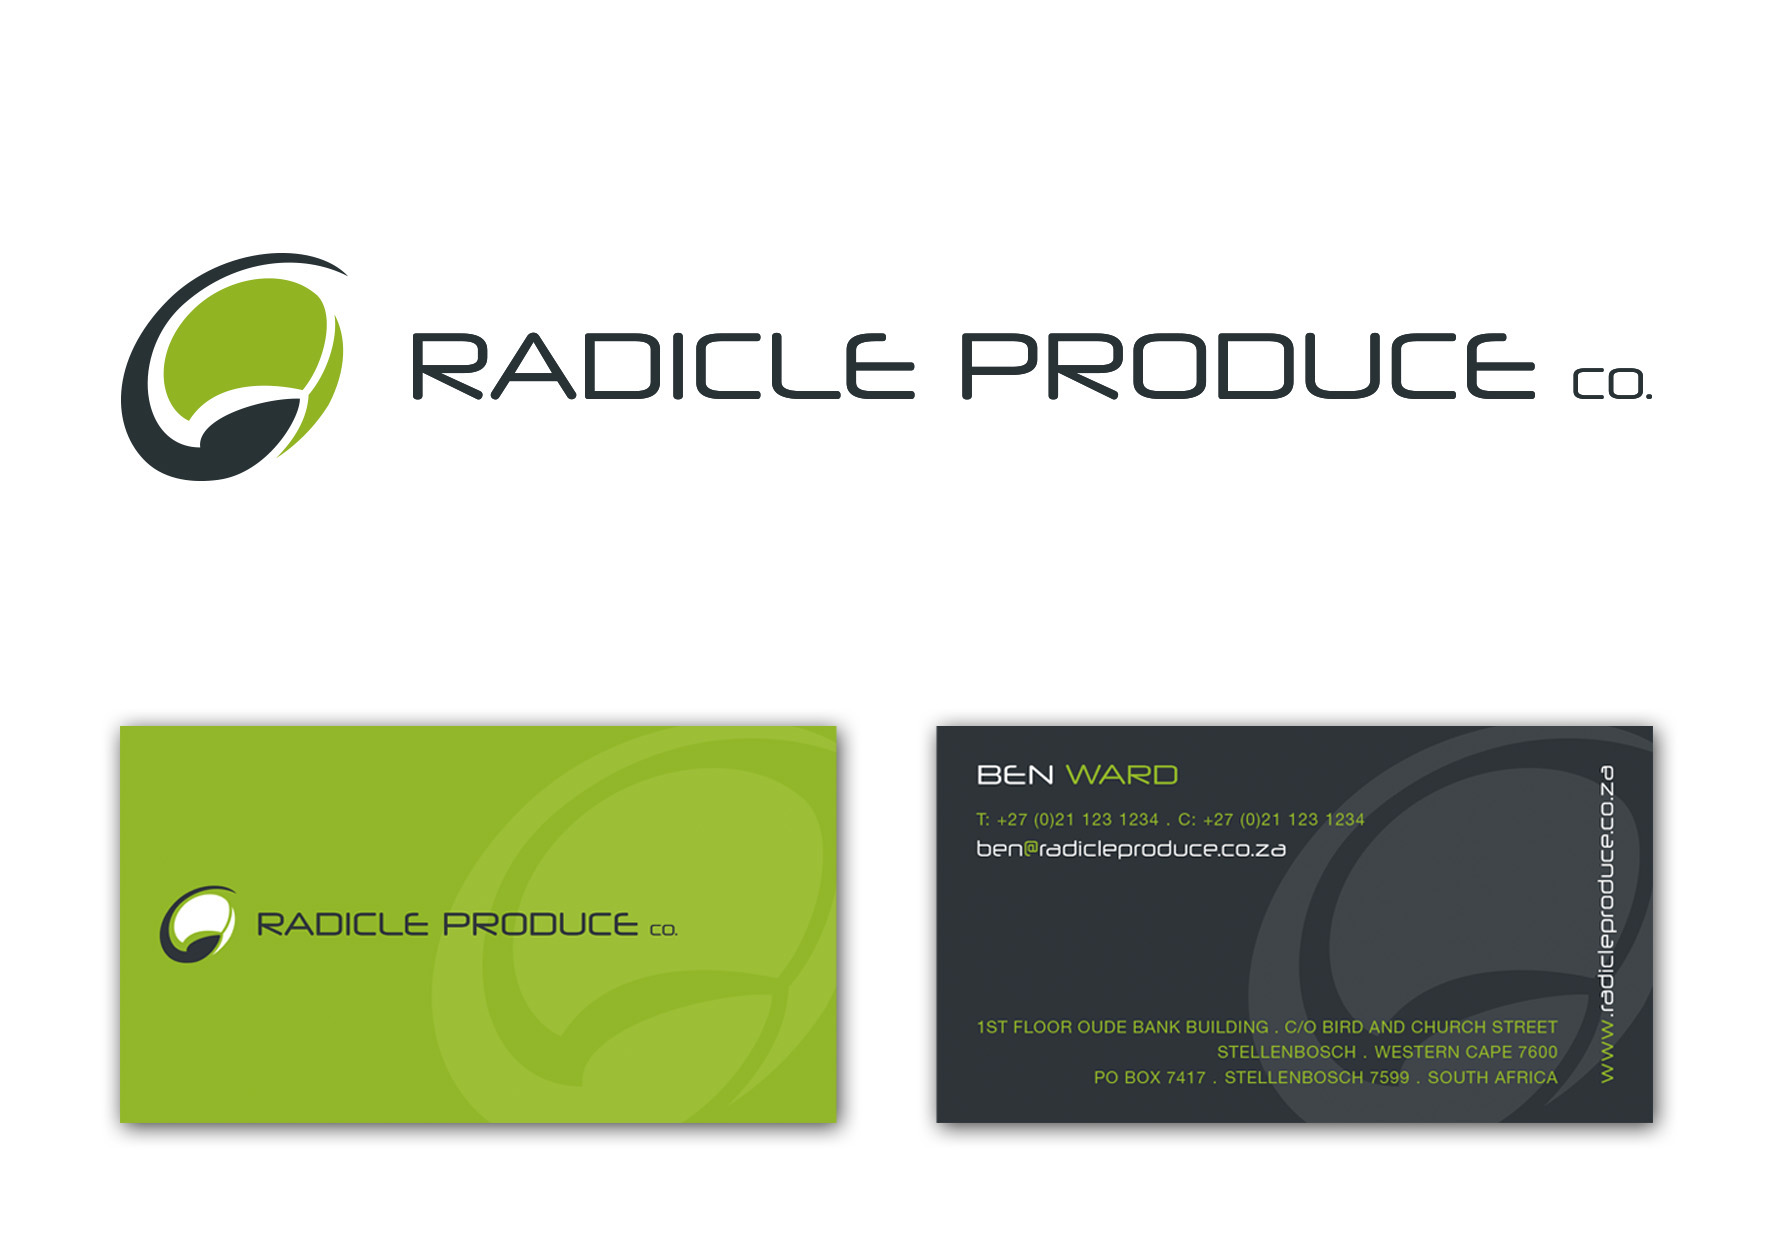 Radicle Produce Co